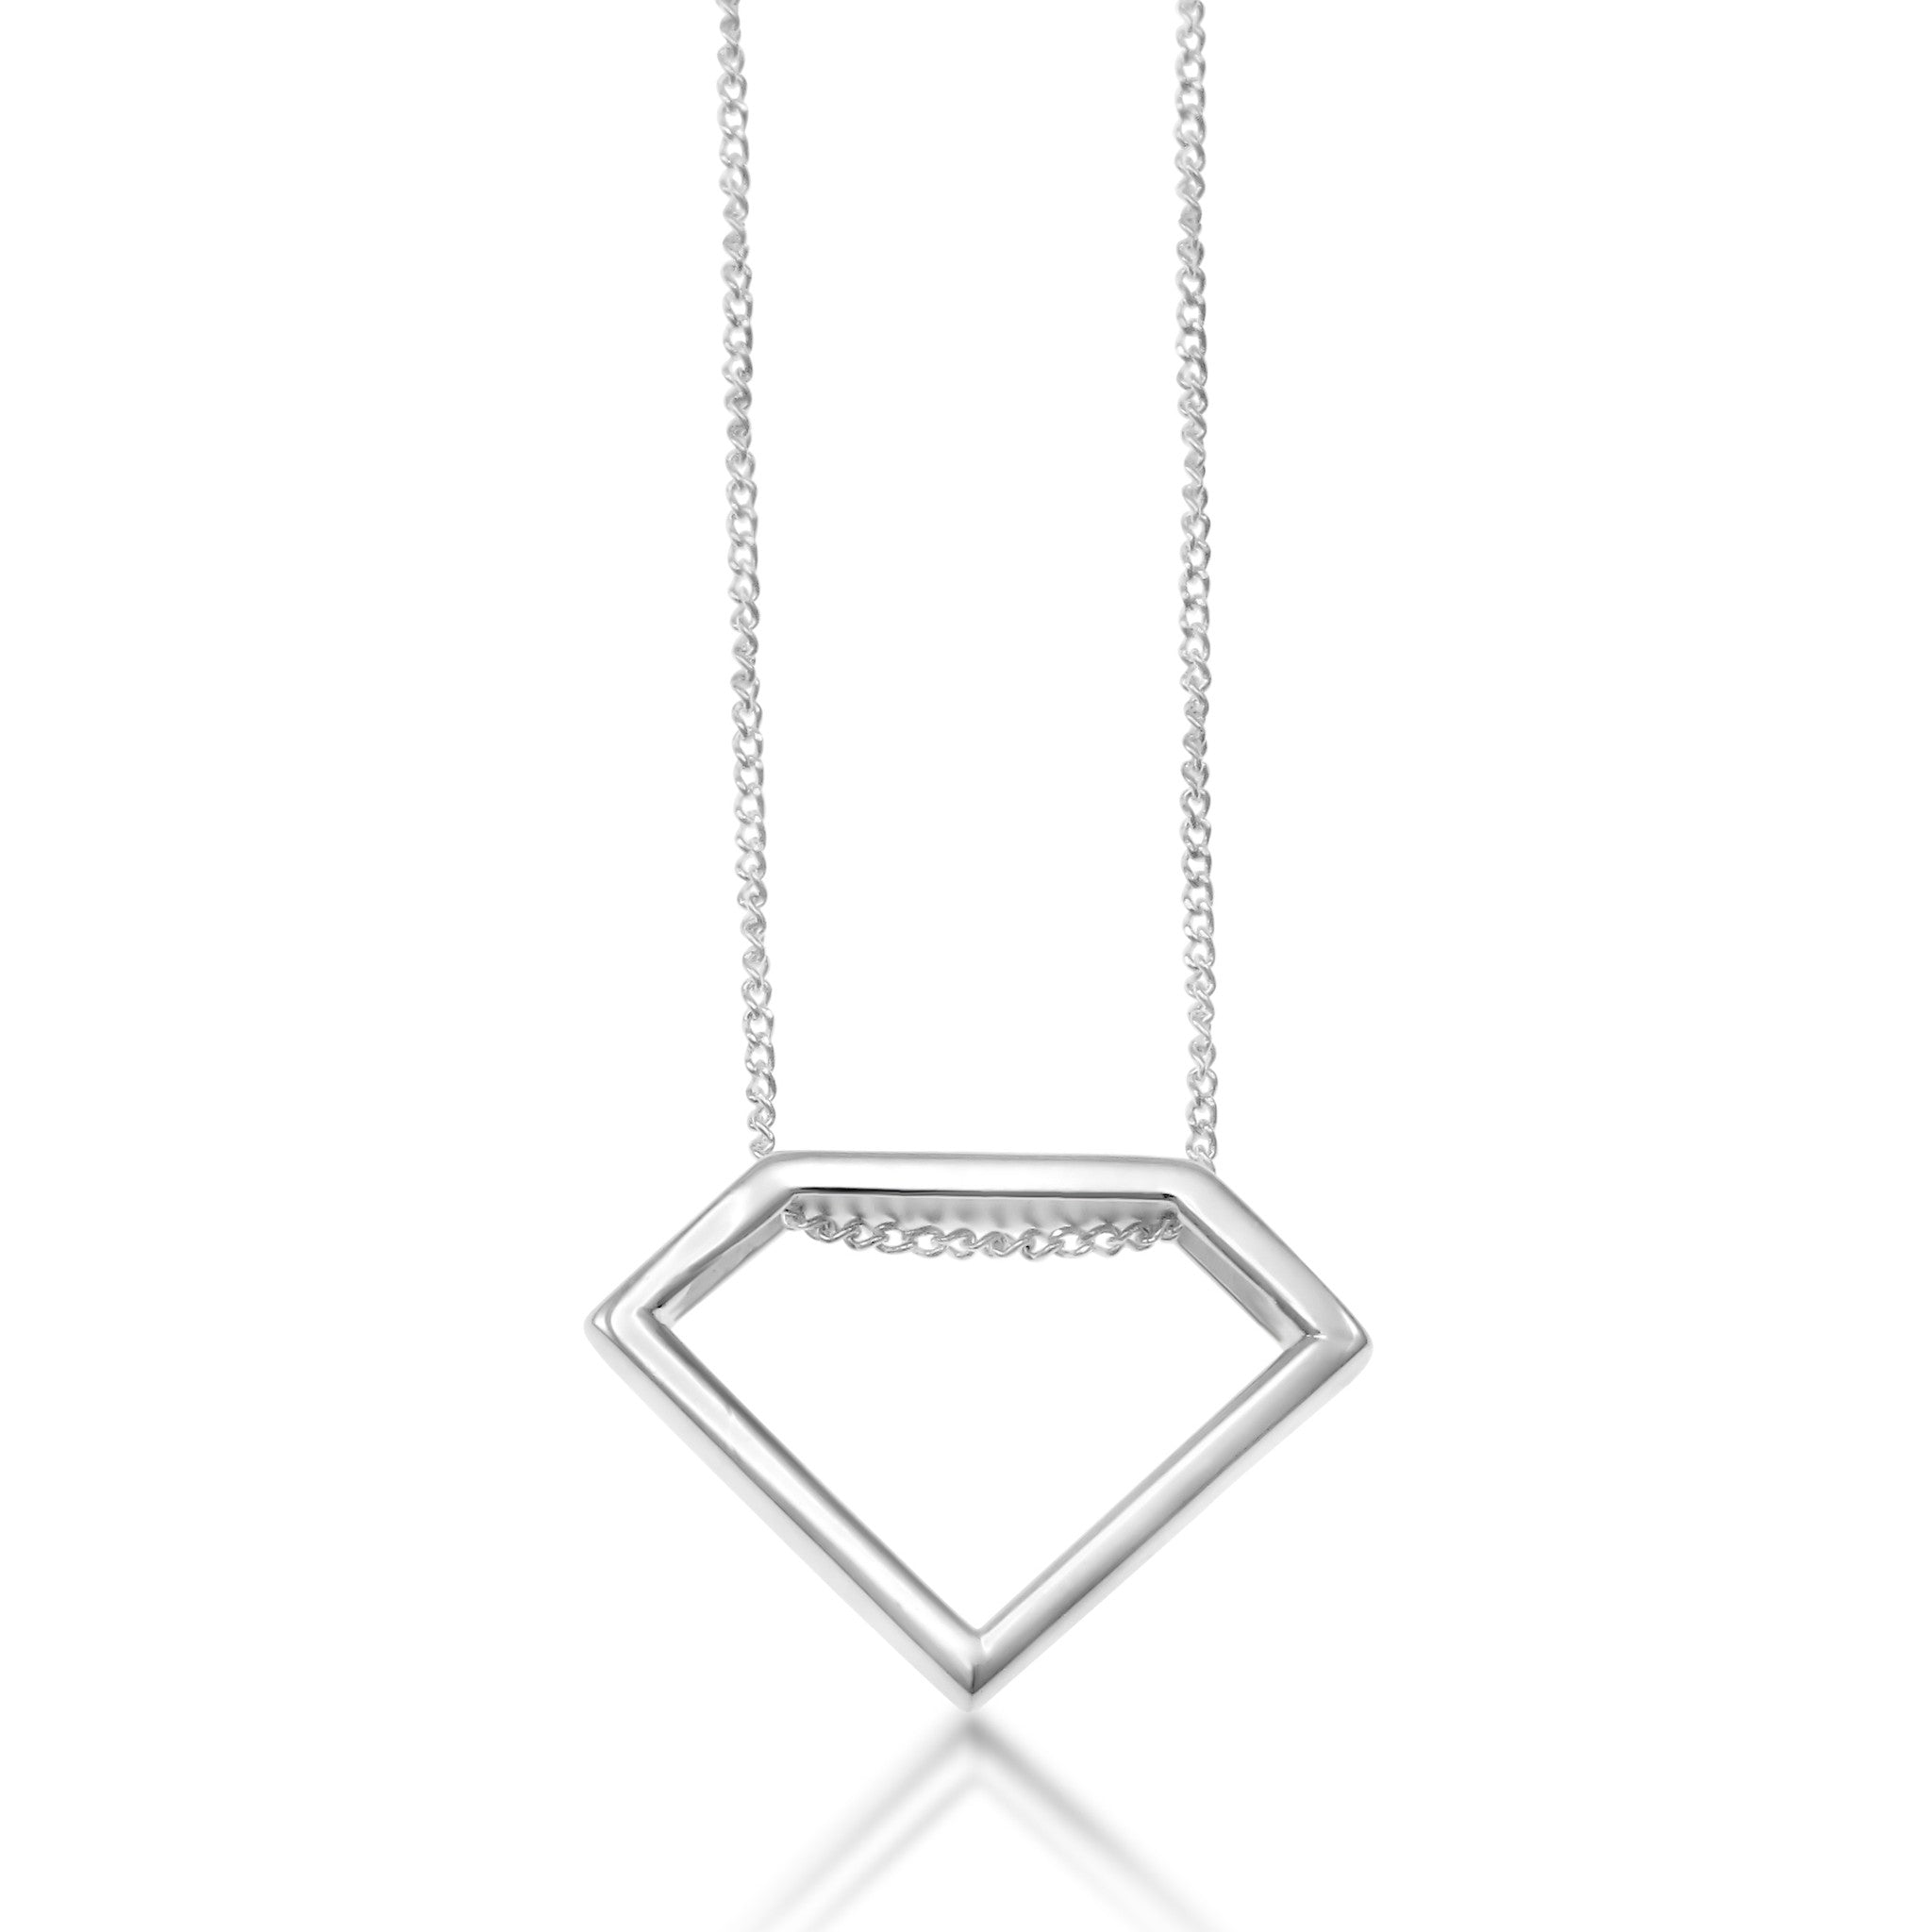 Ingrid Sterling Silver Triangle Necklace